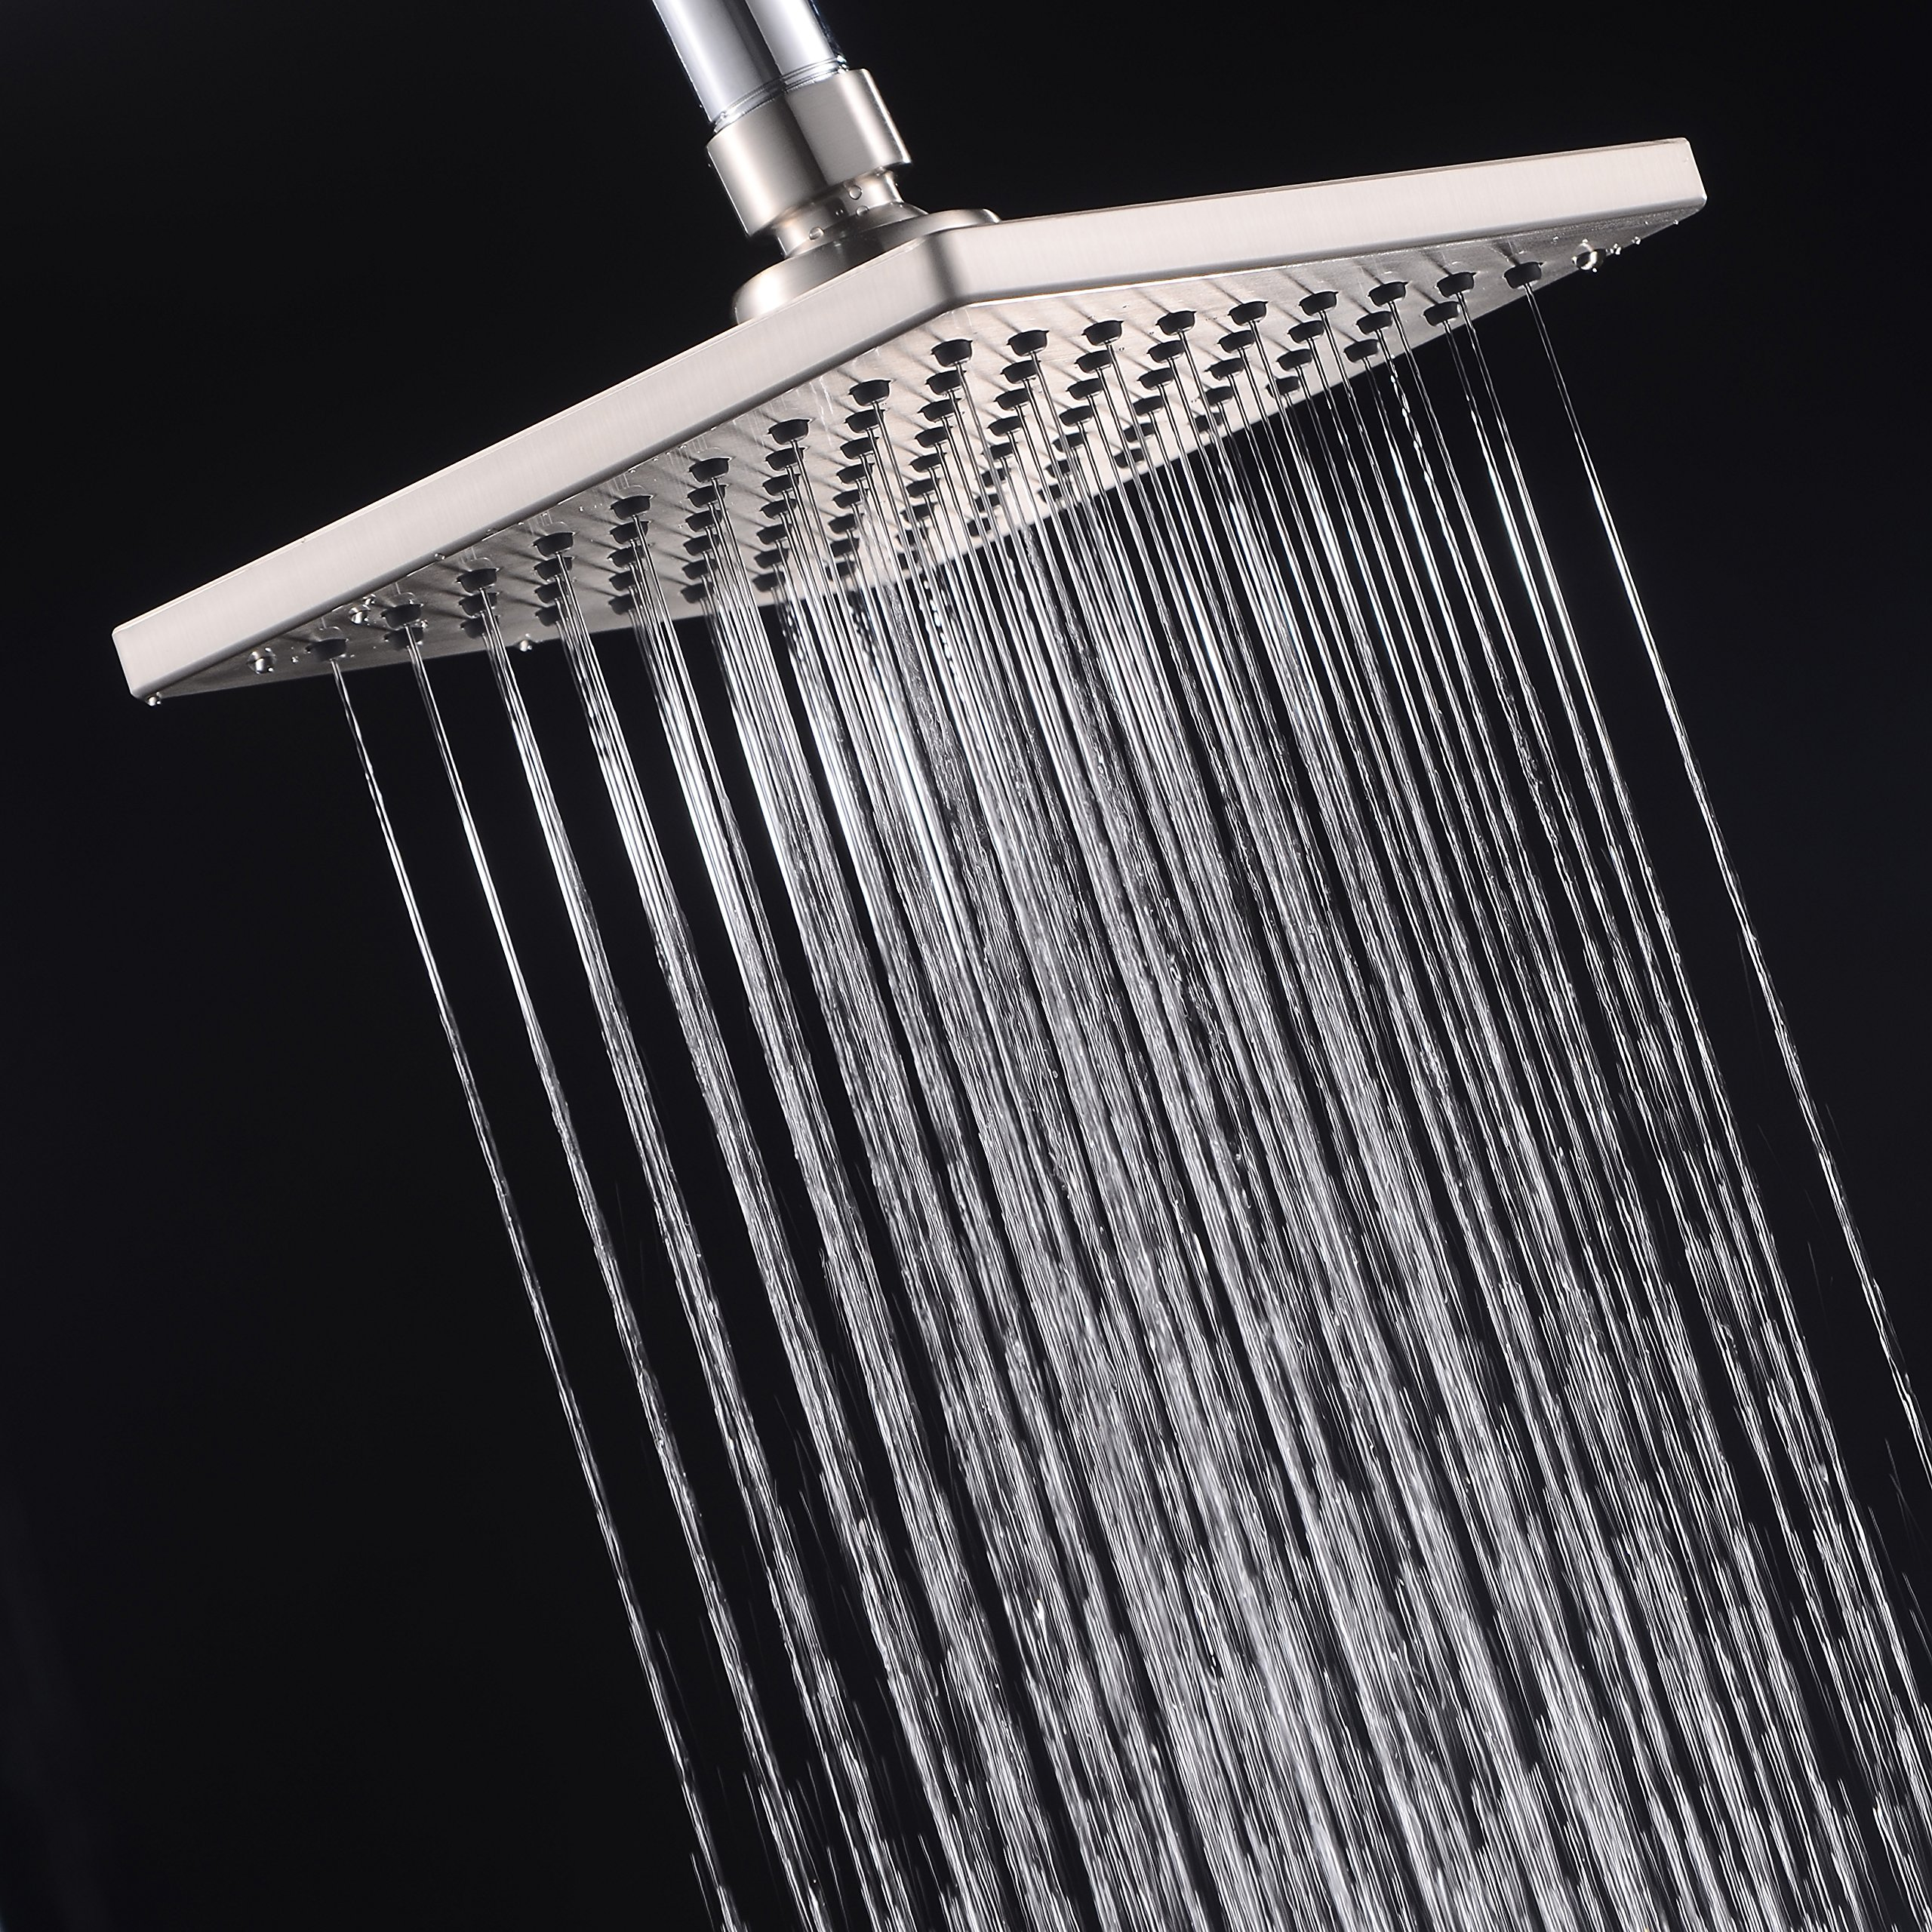 Brushed Nickel 6-inch Square Rain Shower Head, Stainless Steel Back and Brass Swivel Ball Joint